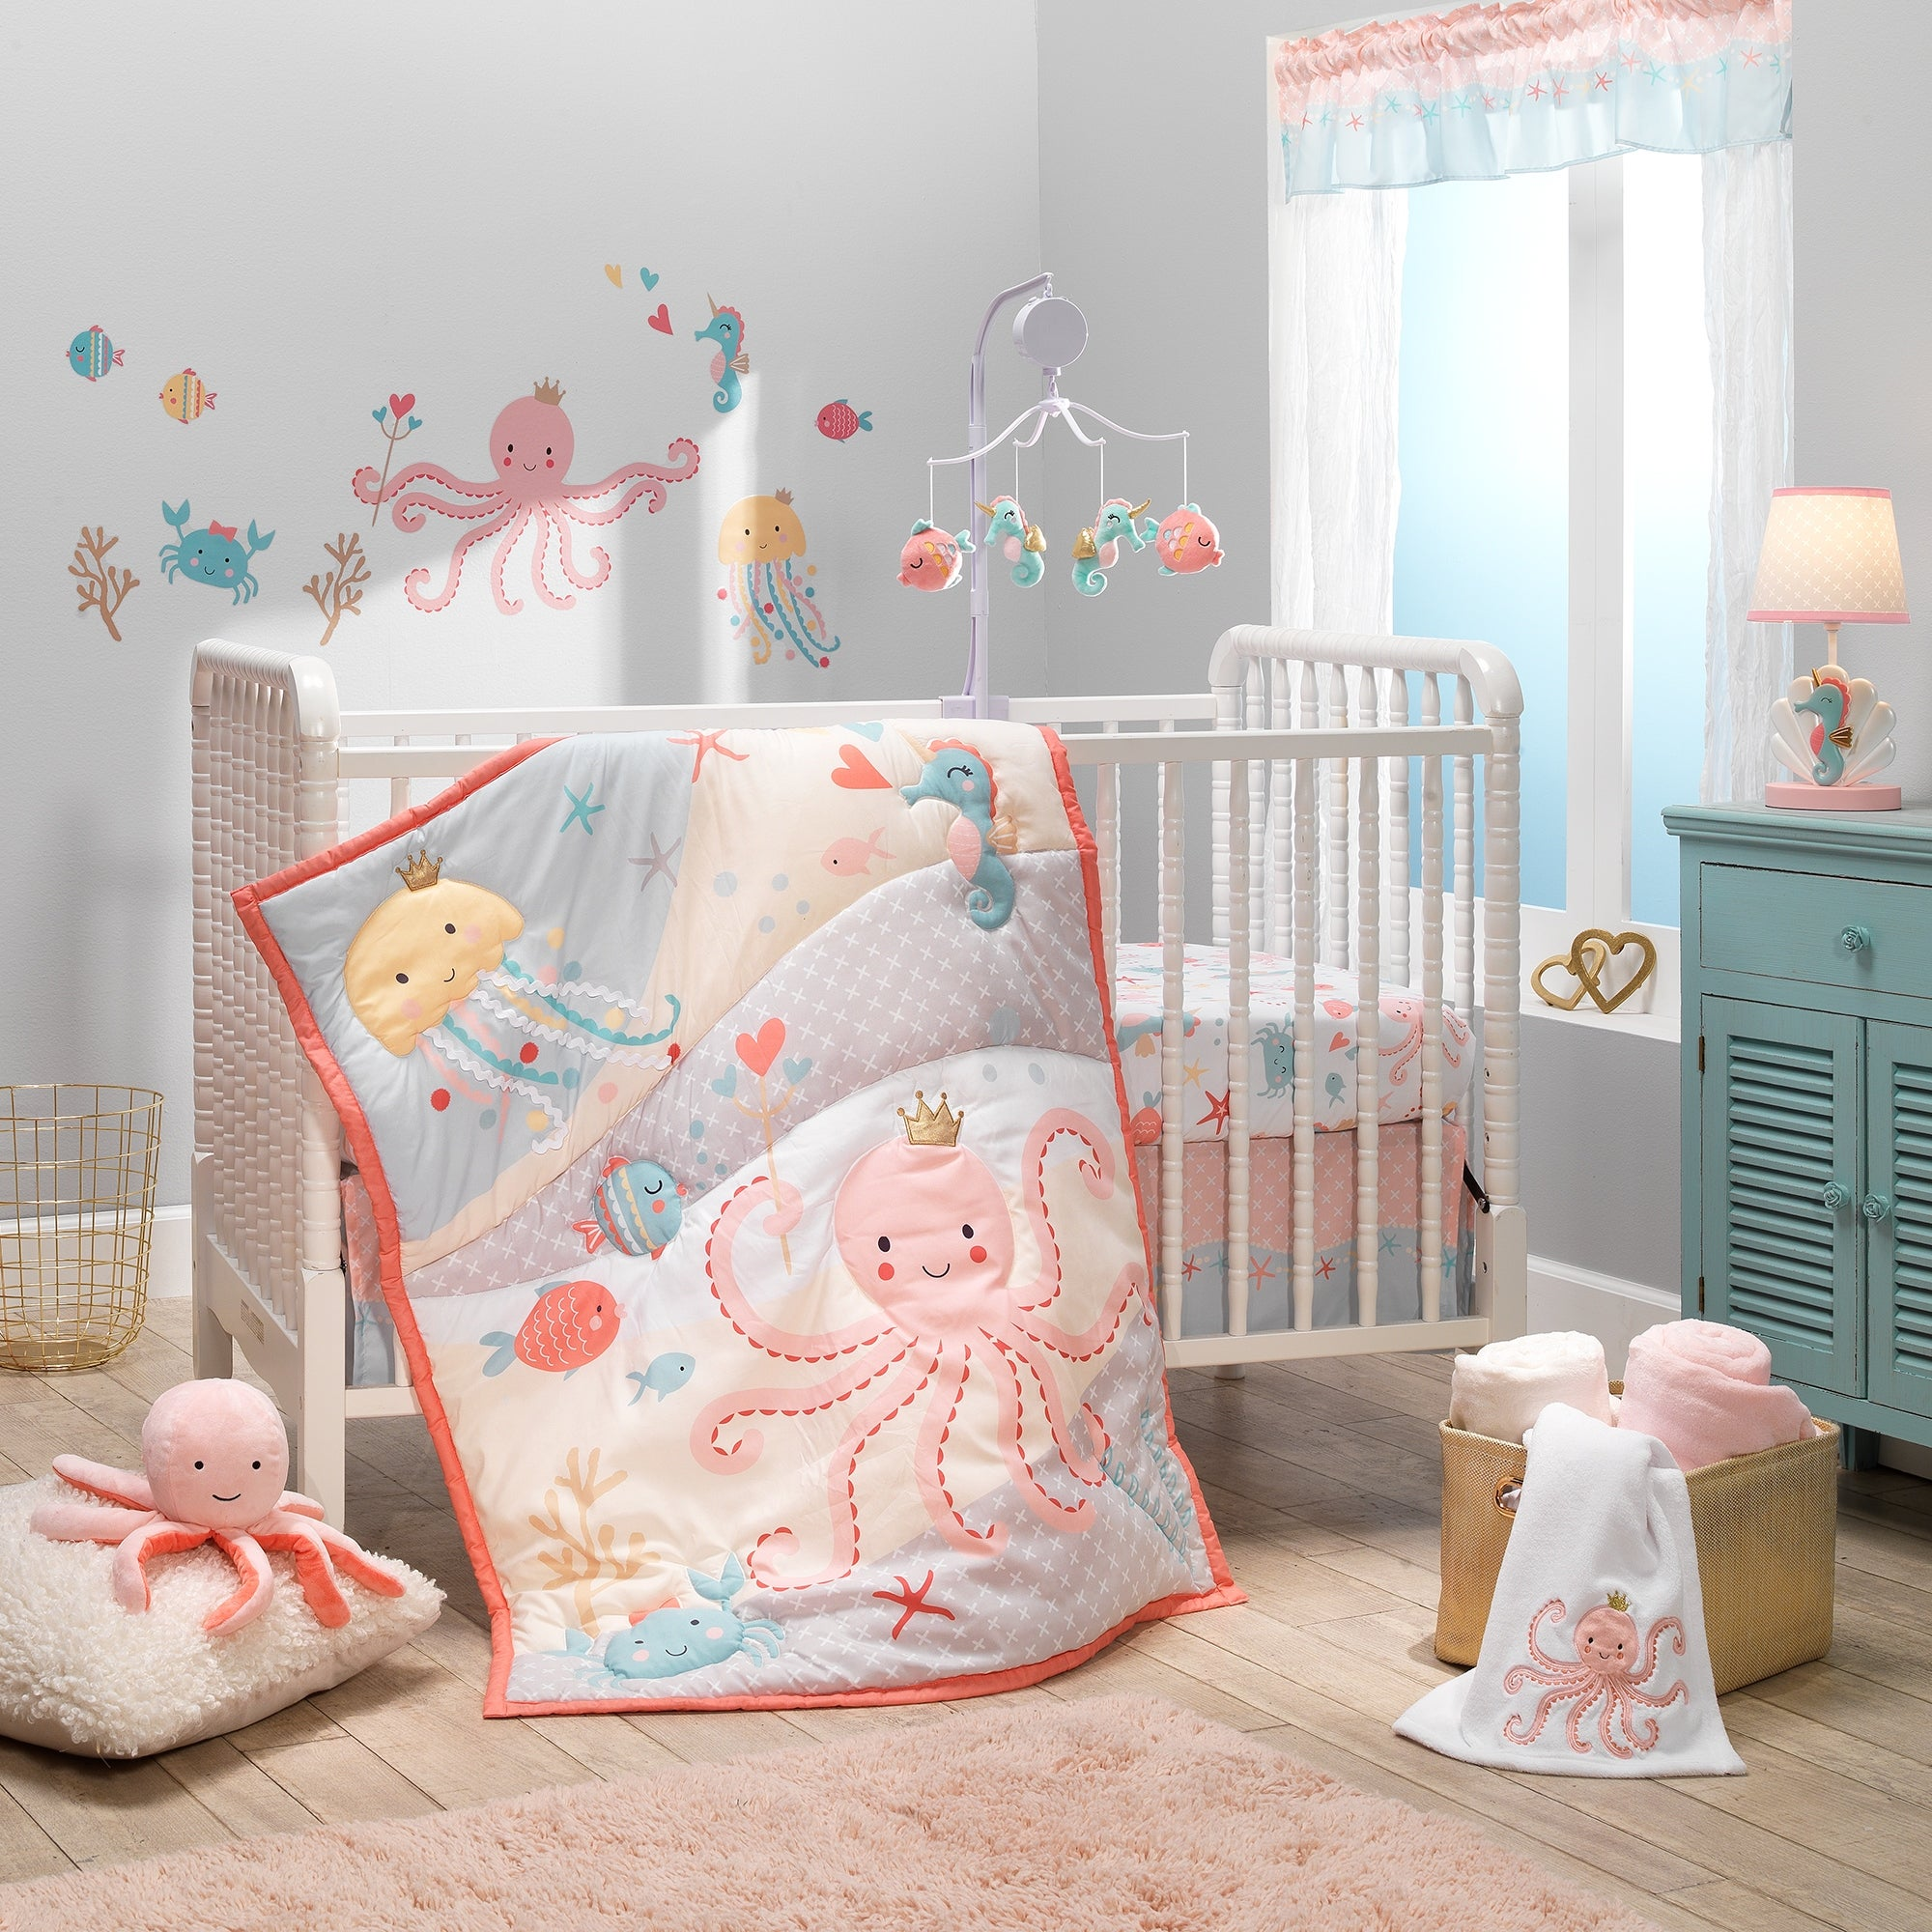 Bedtime Originals Ocean Mist 3-Piece Pink/Gray/Yellow Baby Crib Bedding Set